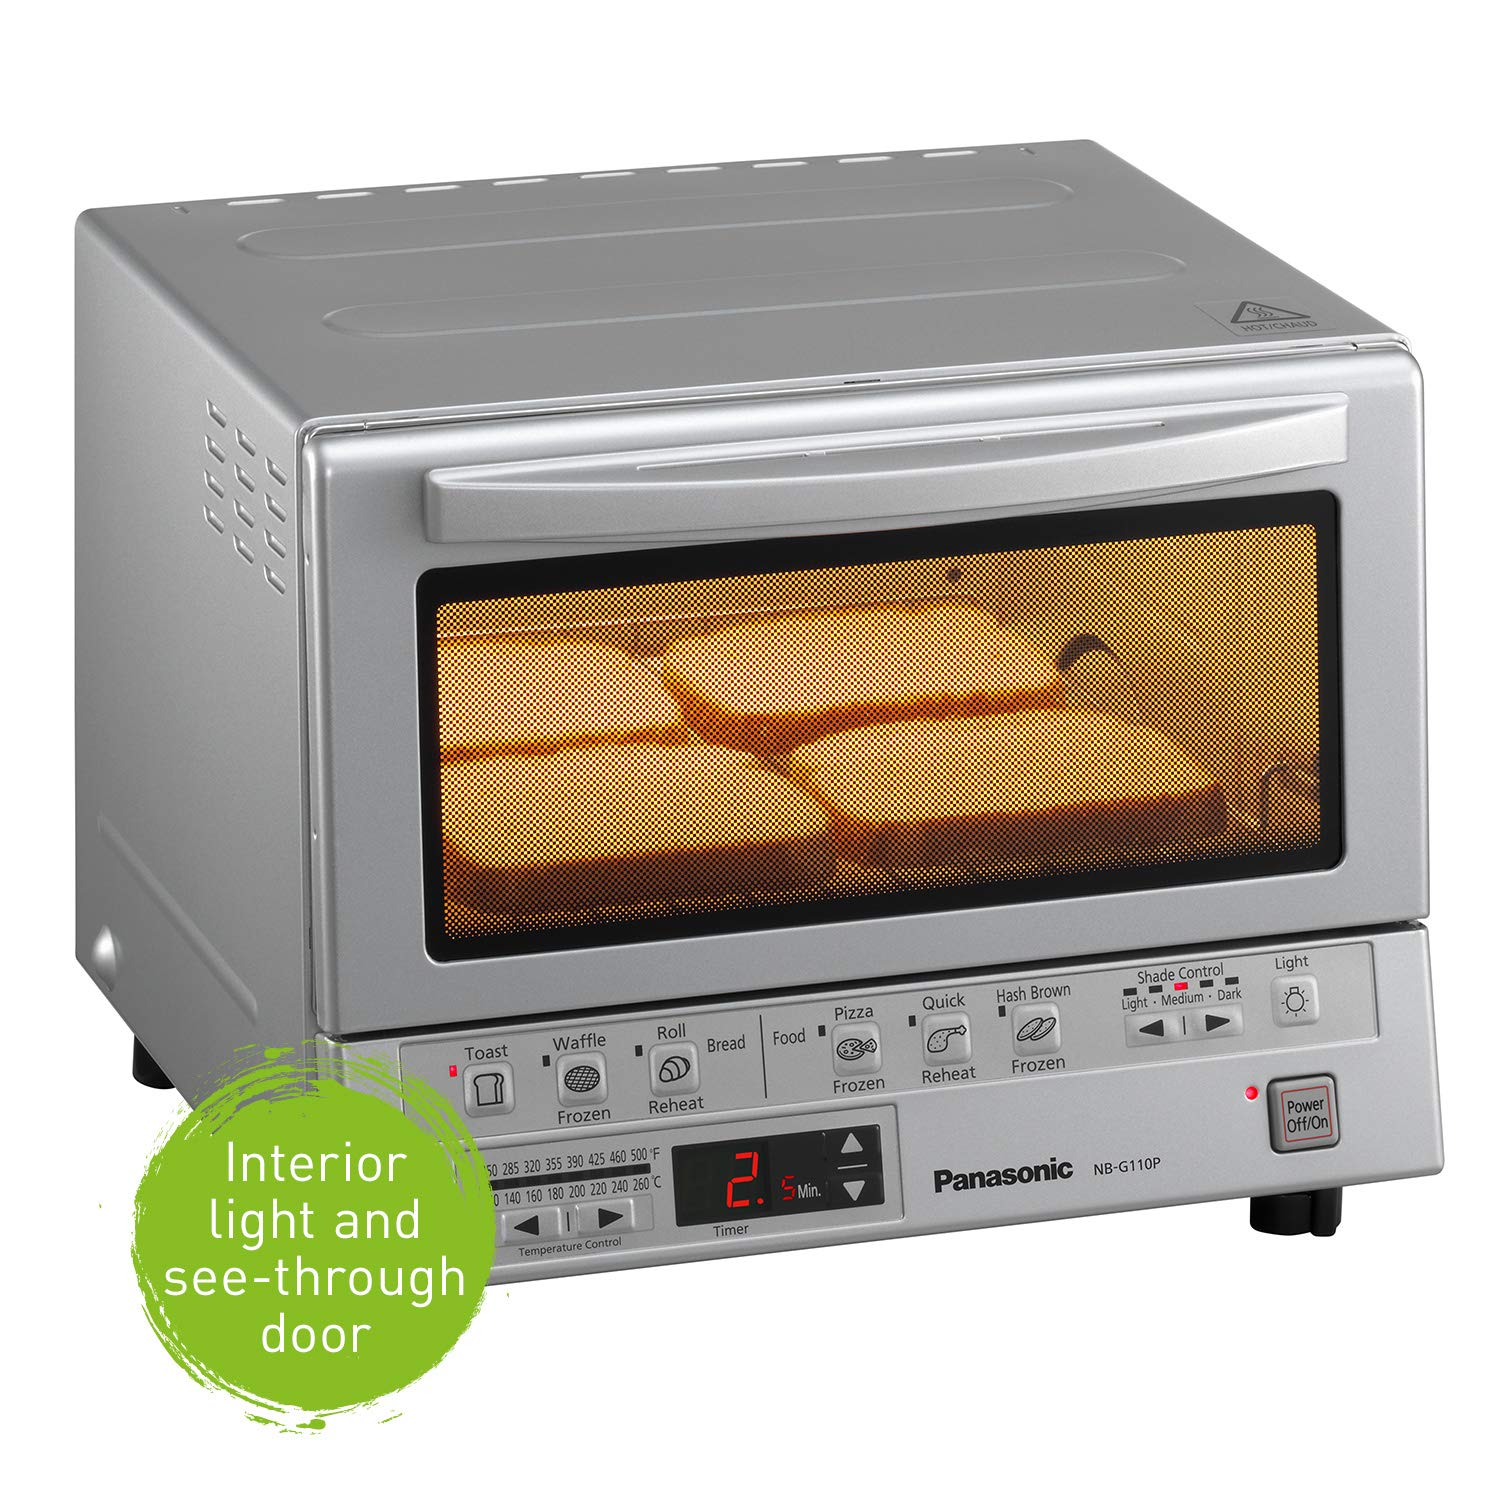 White NB-G110P-W Panasonic FlashXpress Compact Toaster Oven with Double Infrared Heating 4 Slice Countertop Toaster Oven Crumb Tray and 1300 Watts of Cooking Power